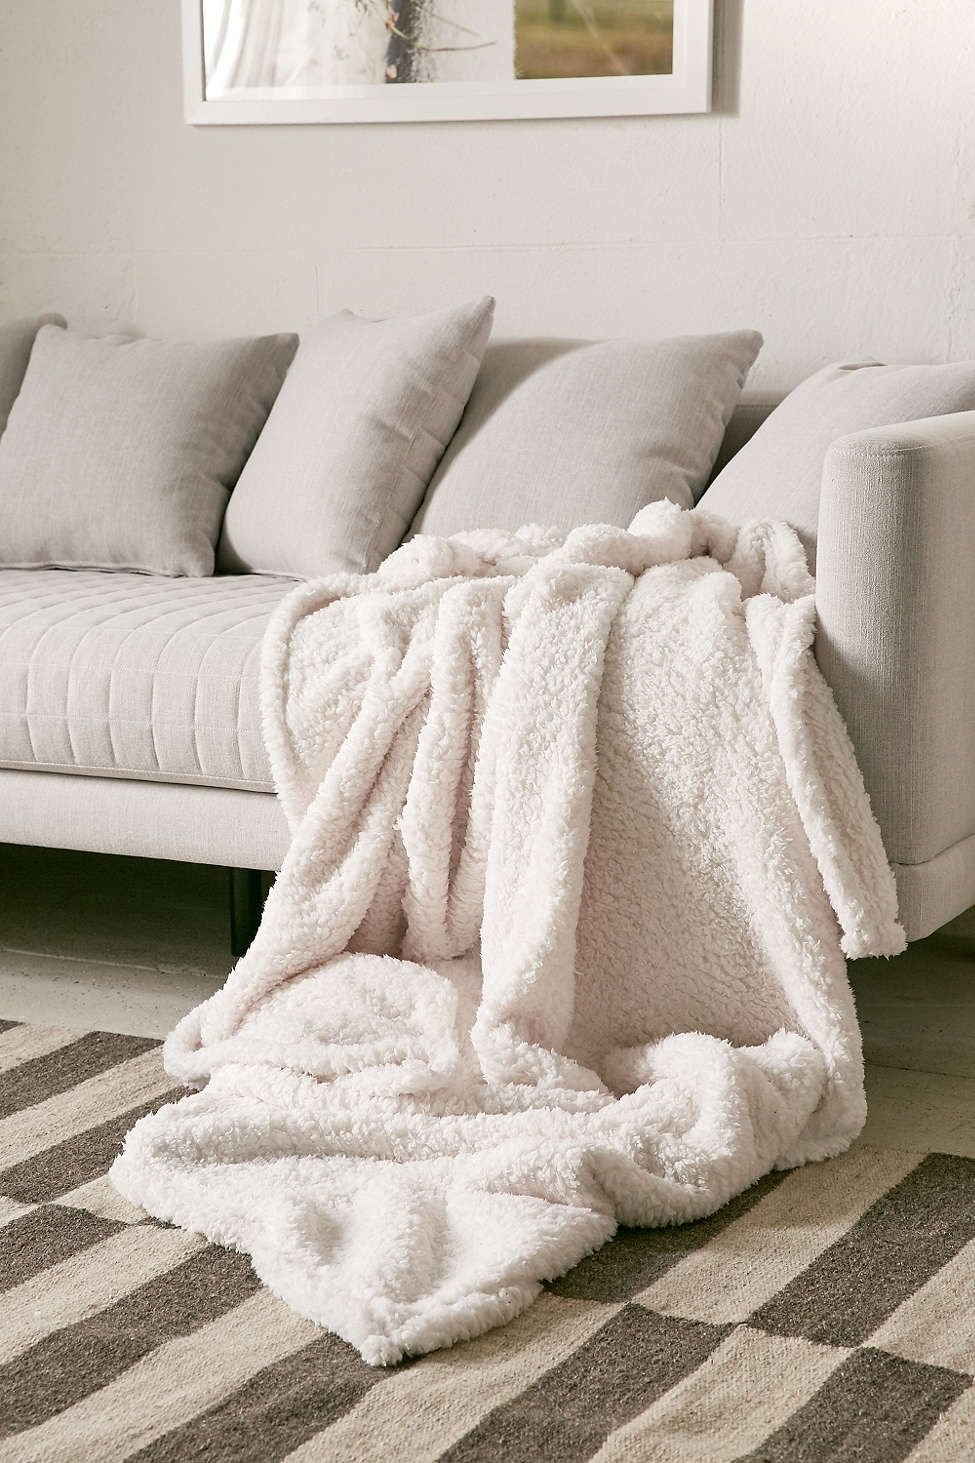 Throw Pillows Urban Outfitters : Amped Fleece Throw Blanket Fleece throw, Urban outfitters and Blanket